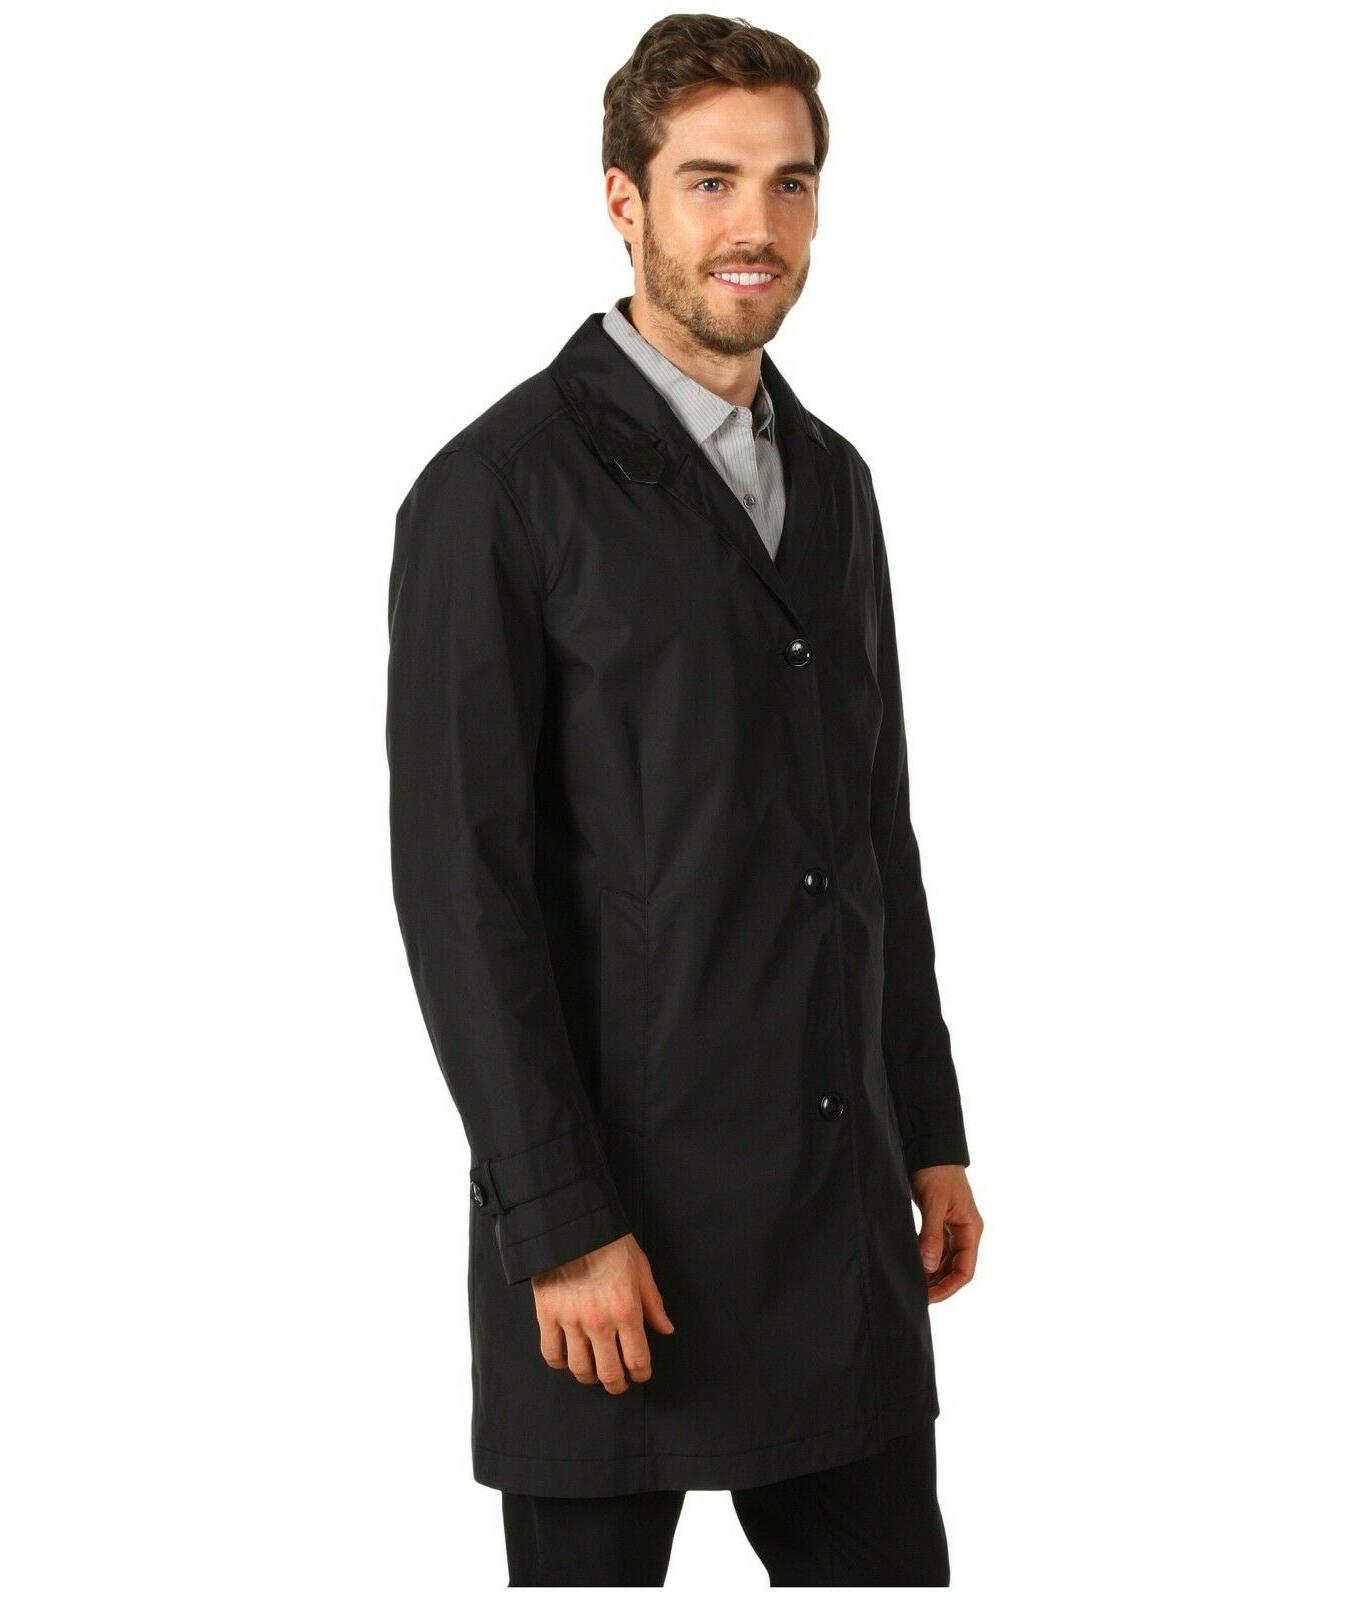 COLE HAAN Raincoat Light Trench Black L Brooks Bros